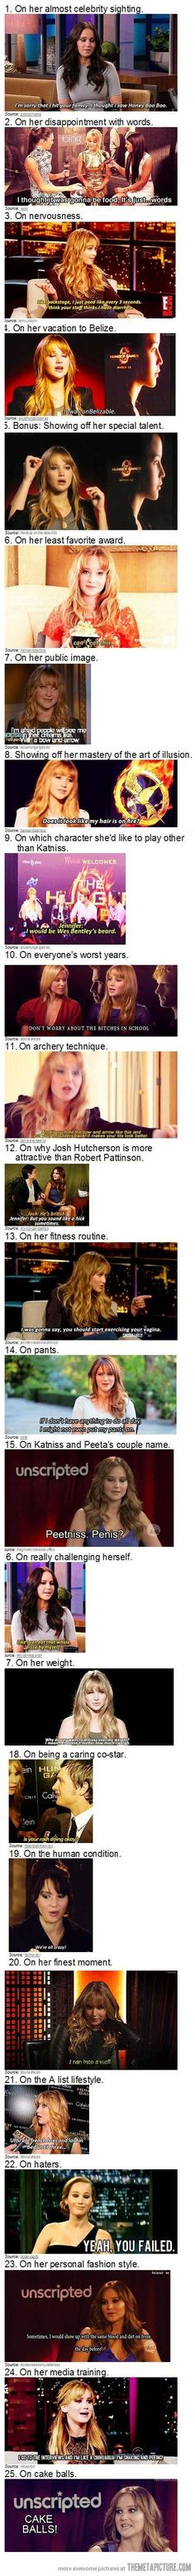 Jennifer Lawrence's brilliance…